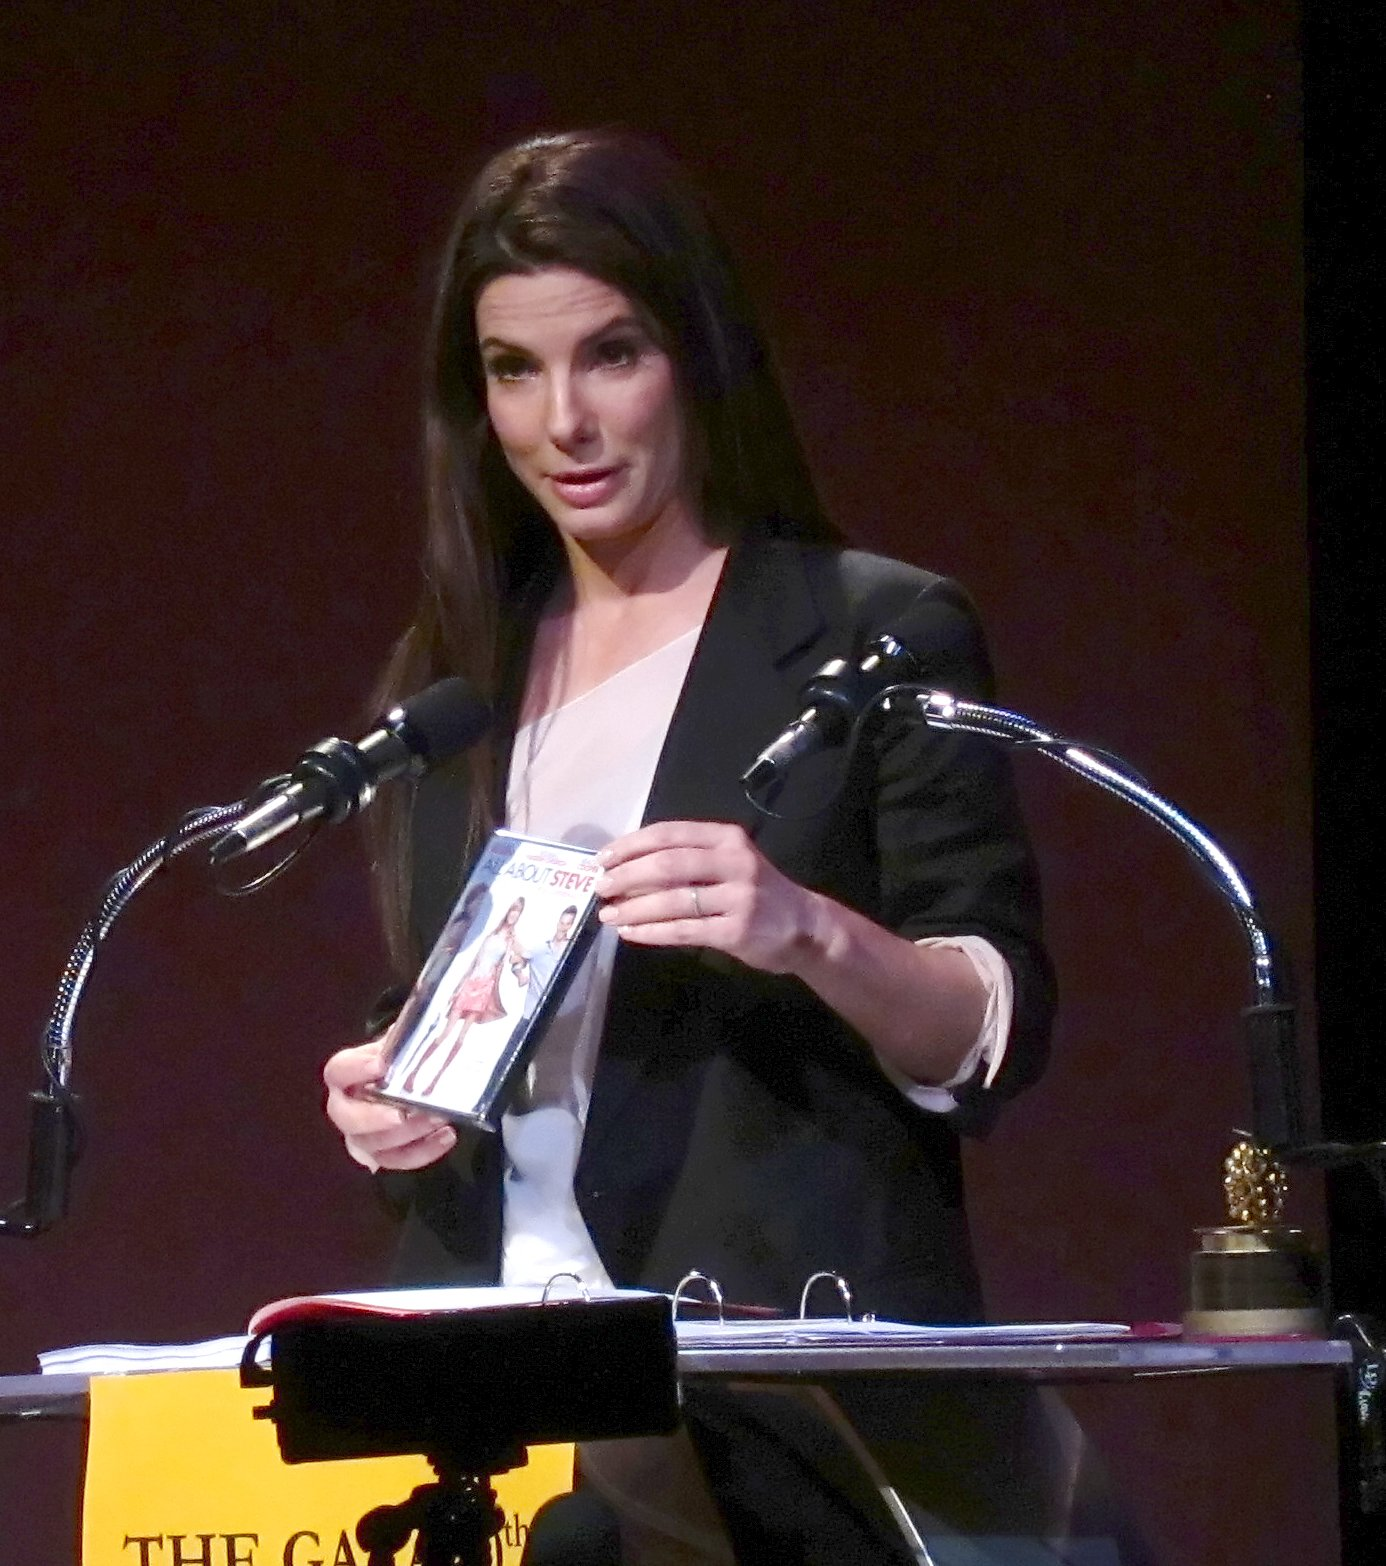 http://3.bp.blogspot.com/-4uxXq5wUuAM/ThTvWIJGiDI/AAAAAAAACUk/2Ykd4ffmC5c/s1600/Sandra_Bullock_at_2010_Razzies_adjusted.jpg